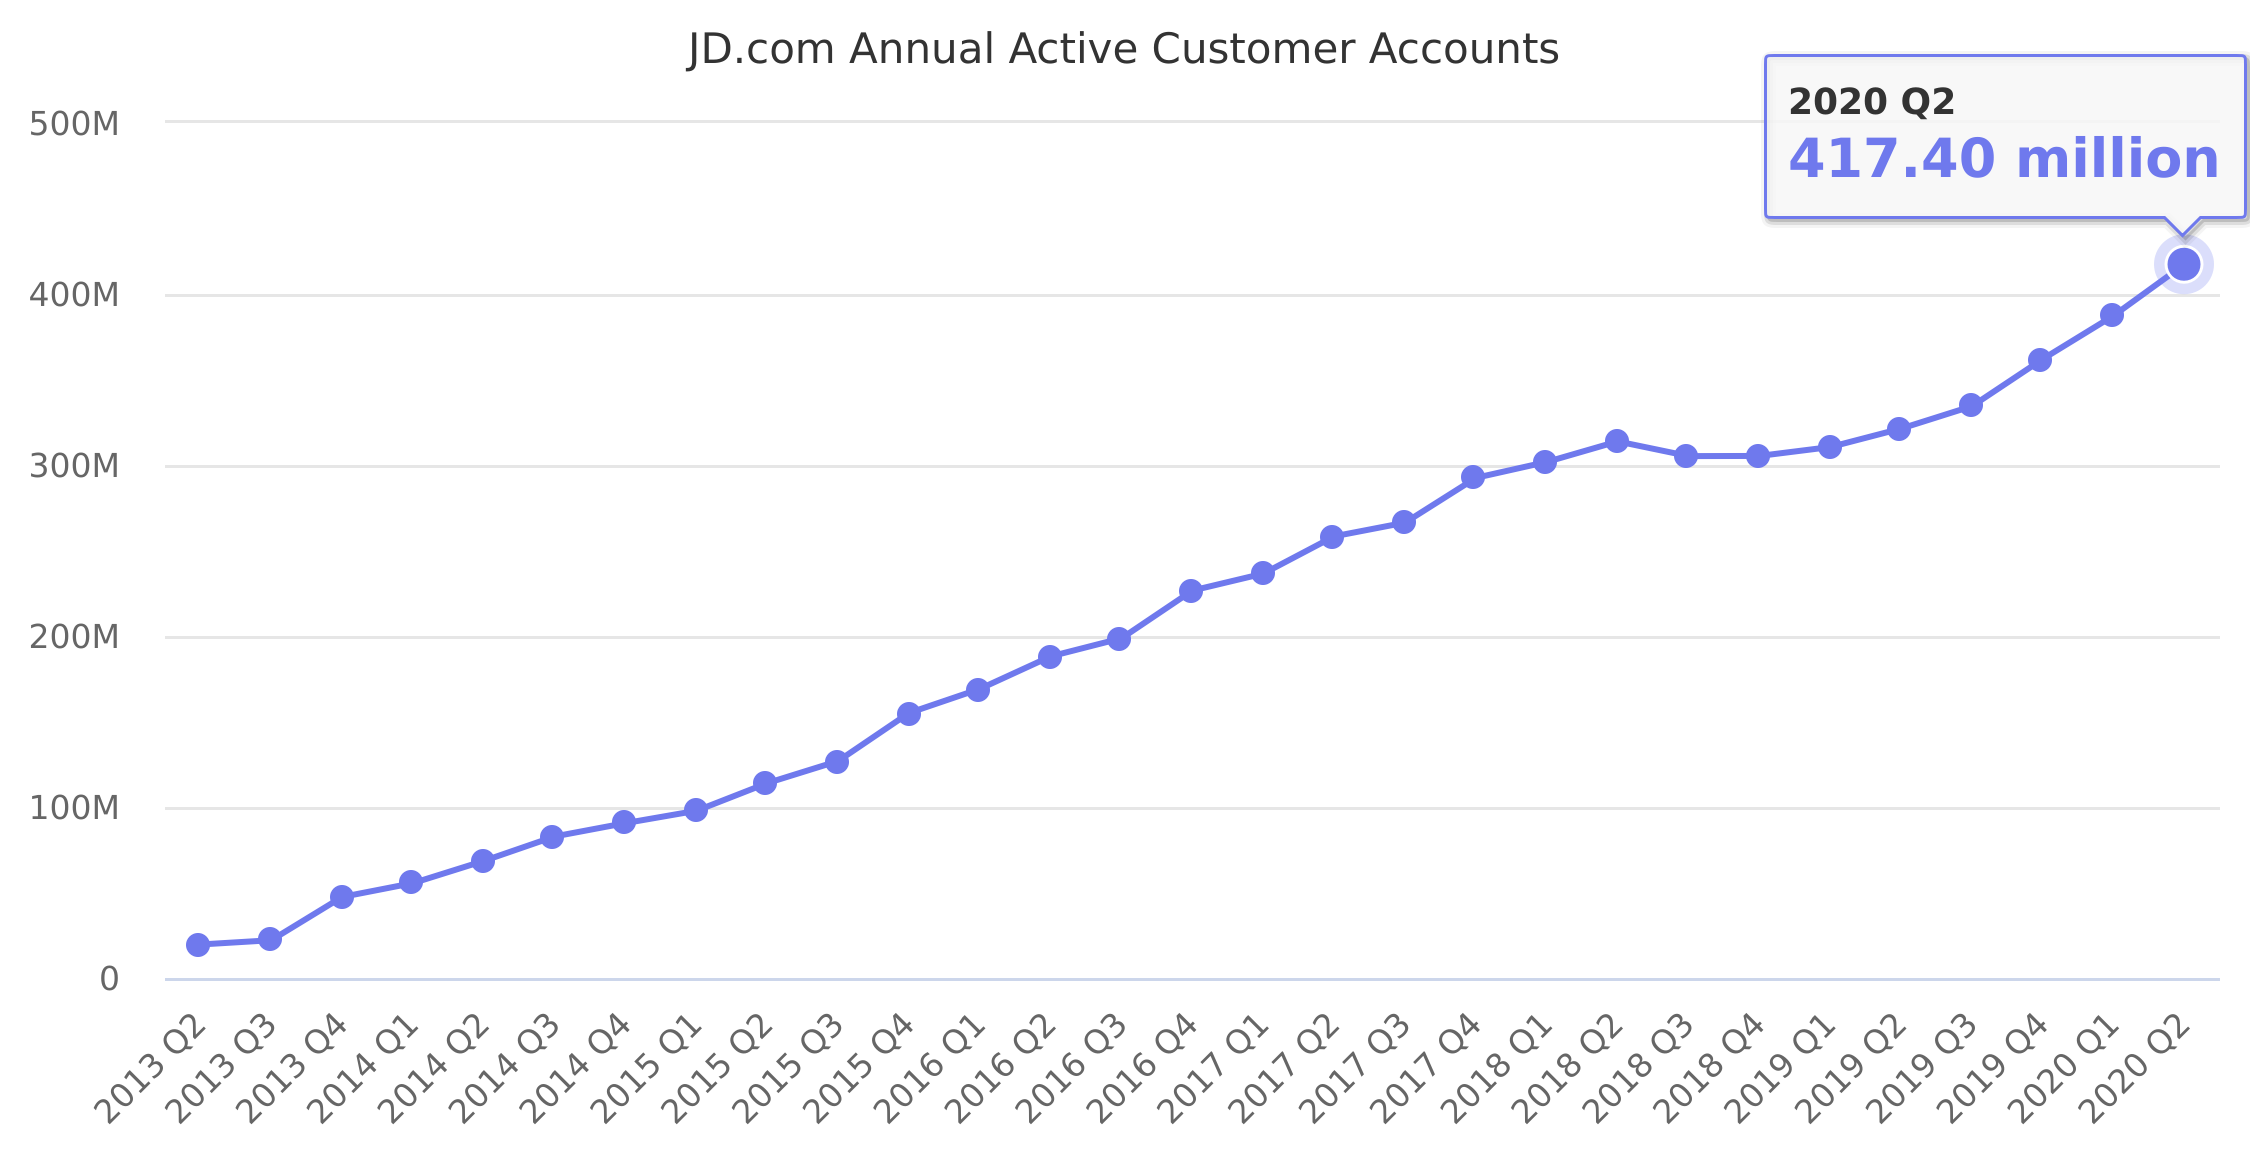 JD.com Annual Active Customer Accounts 2013-2017